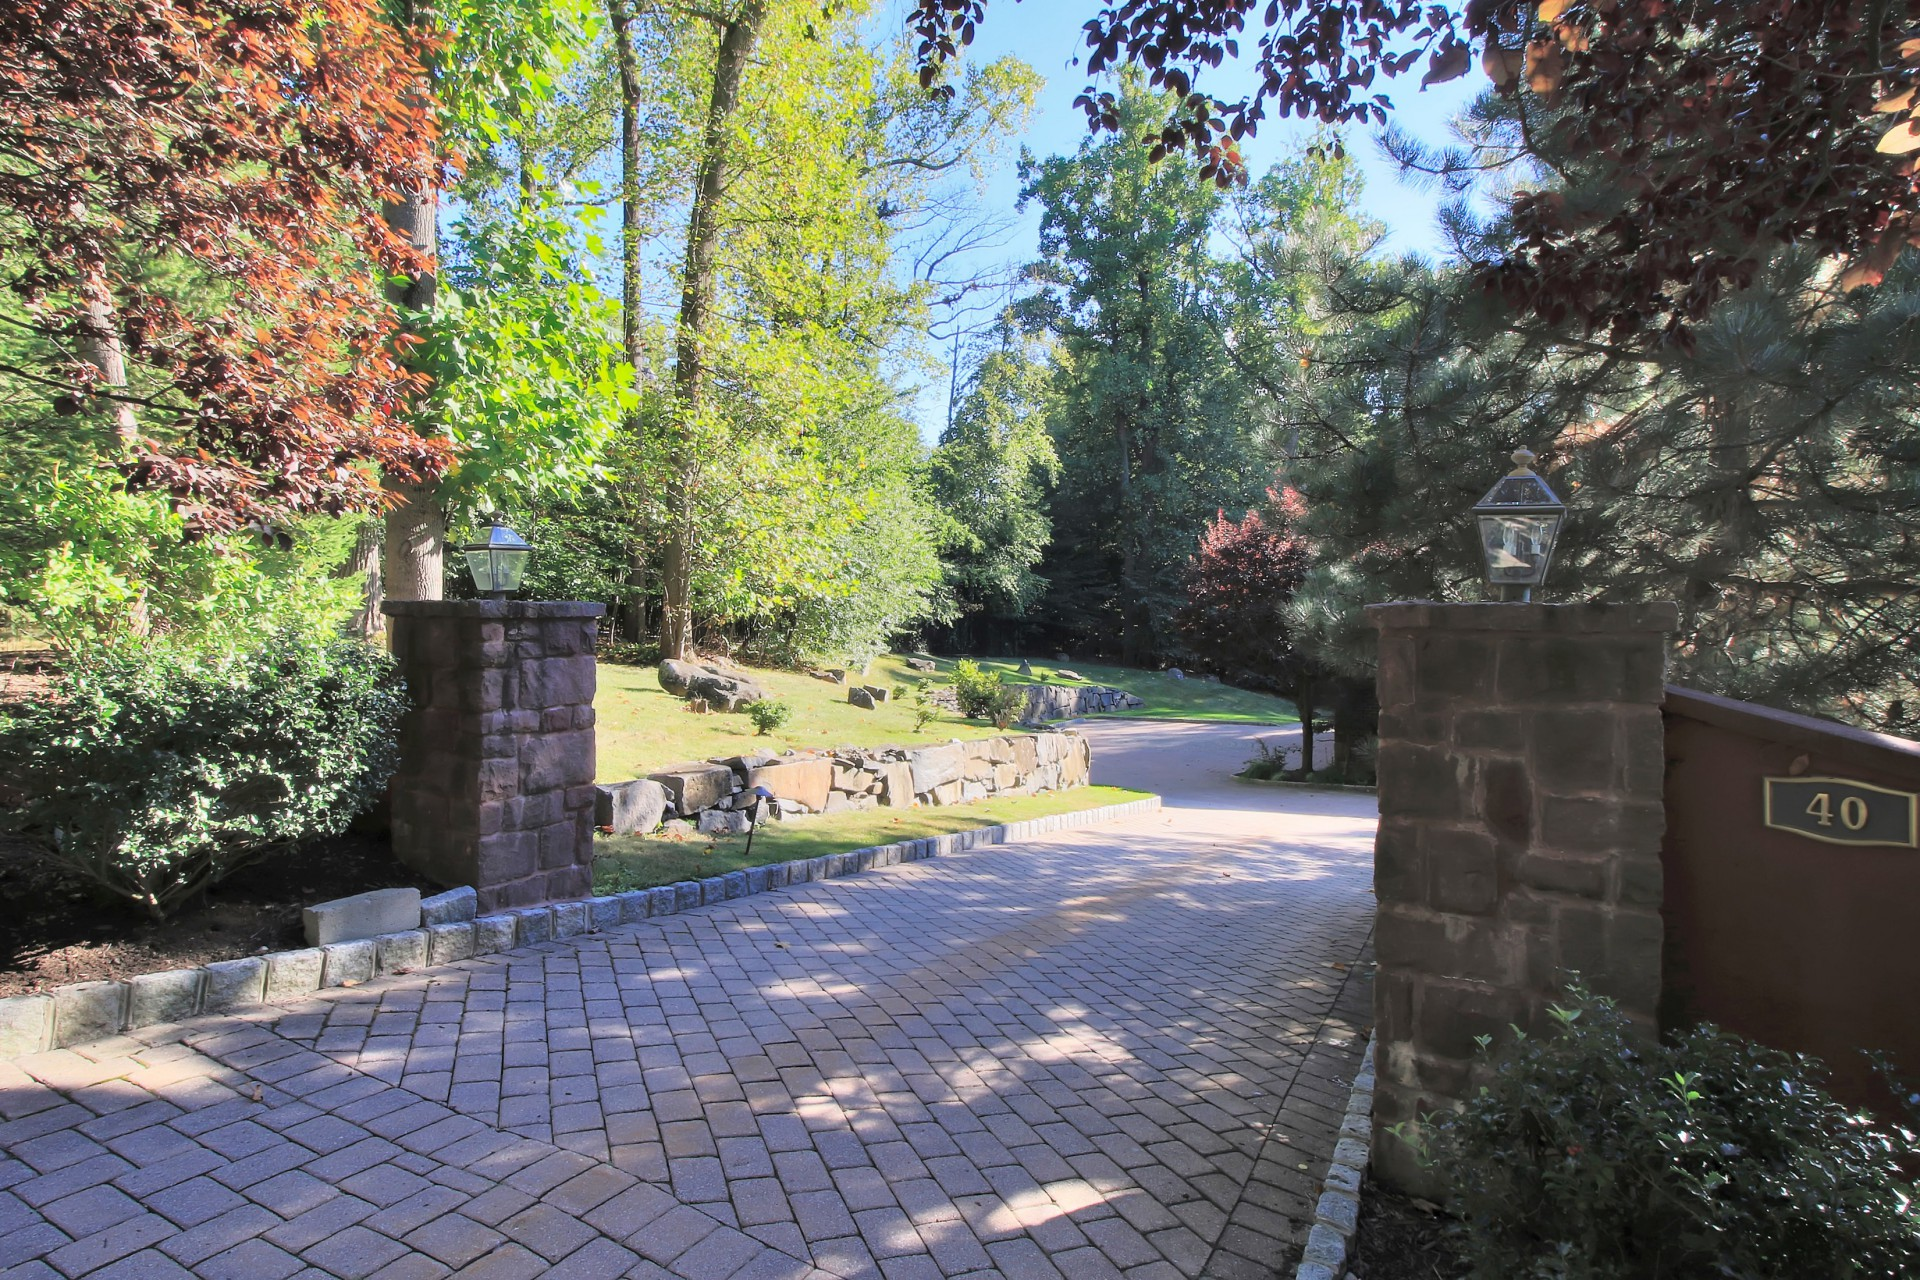 Single Family Home for Sale at Impressive Brick & Stone Colonial 40 Litchfield Way Alpine, 07620 United States